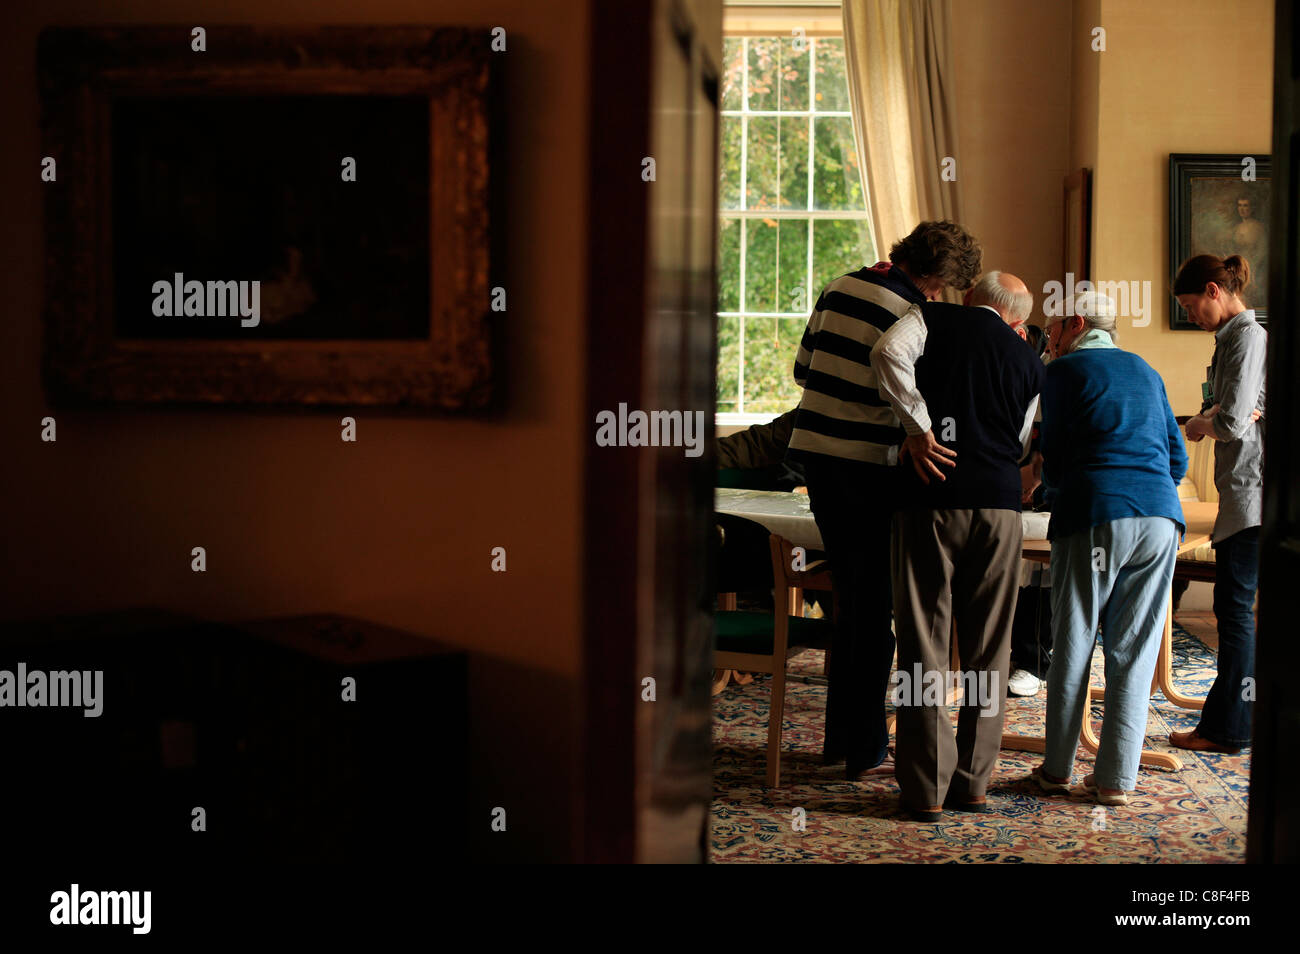 Elderly people gather to view books inside a historic house - Stock Image